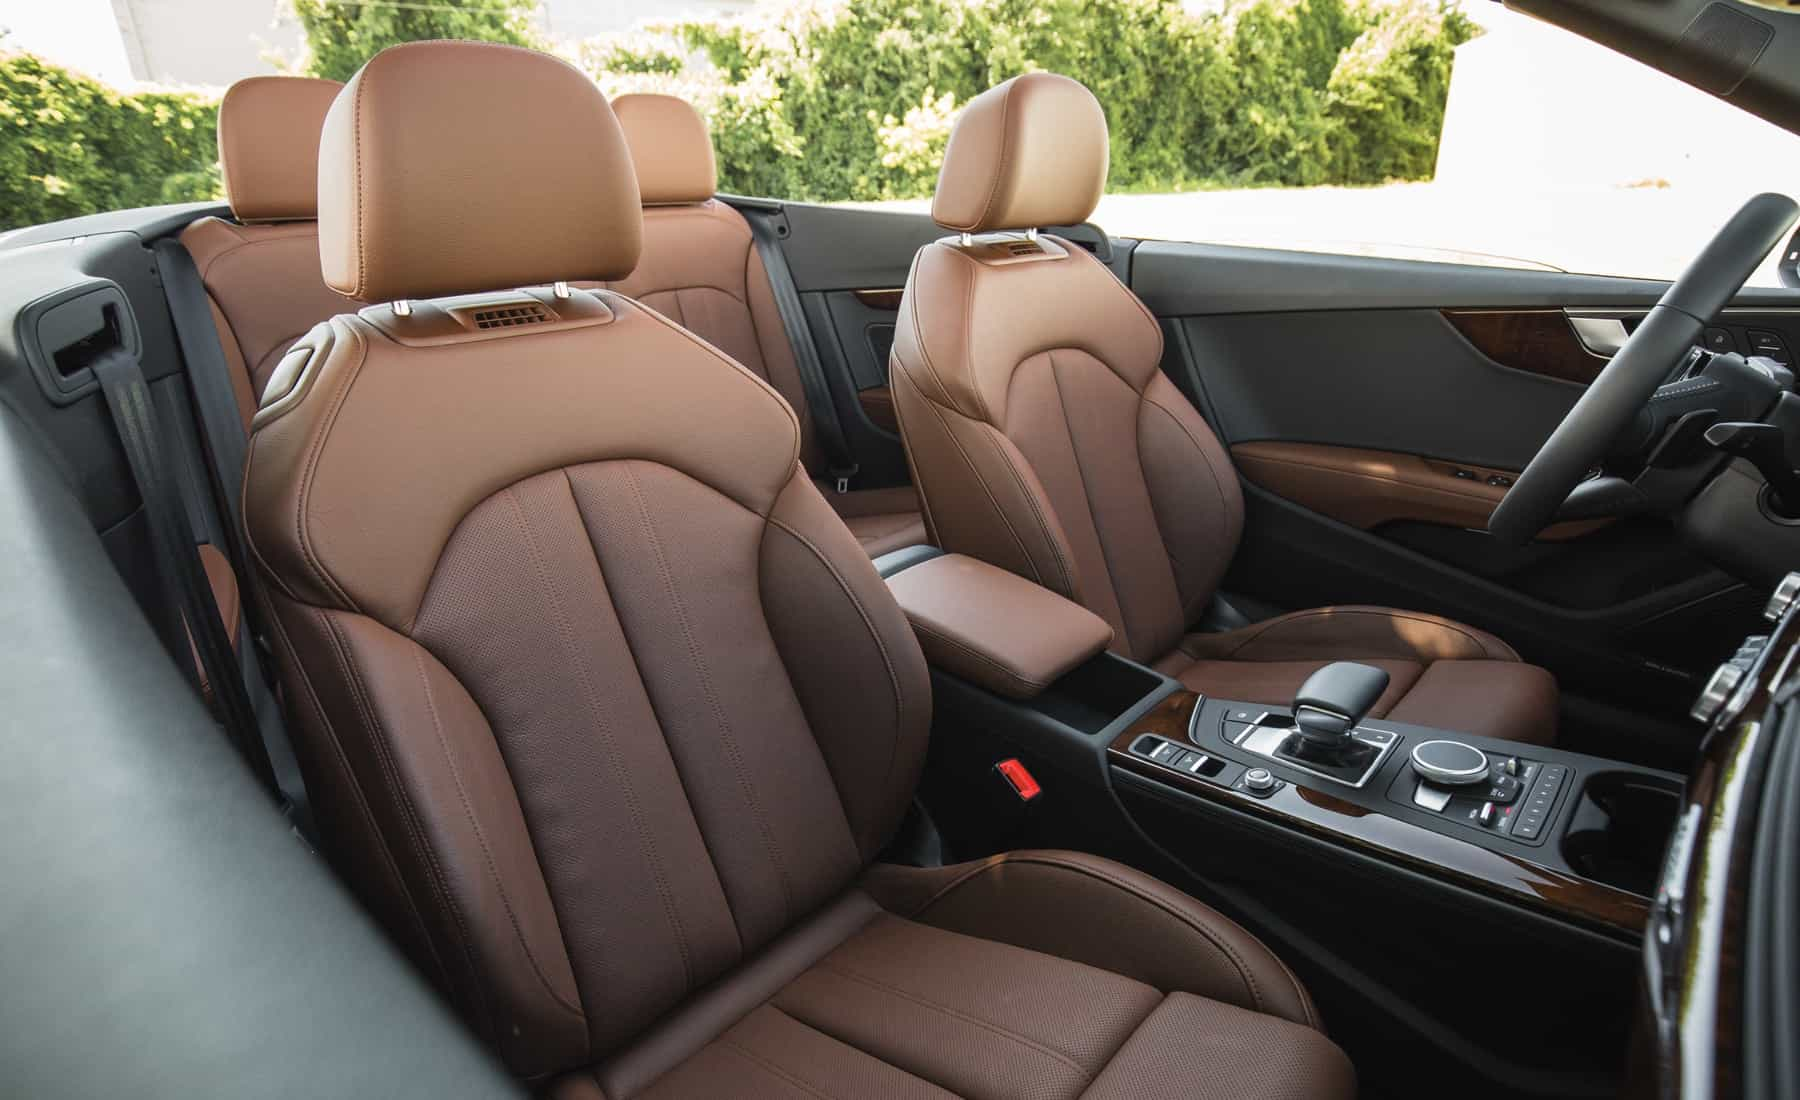 2018 Audi A5 Cabriolet Interior Seats Front (Photo 26 of 45)